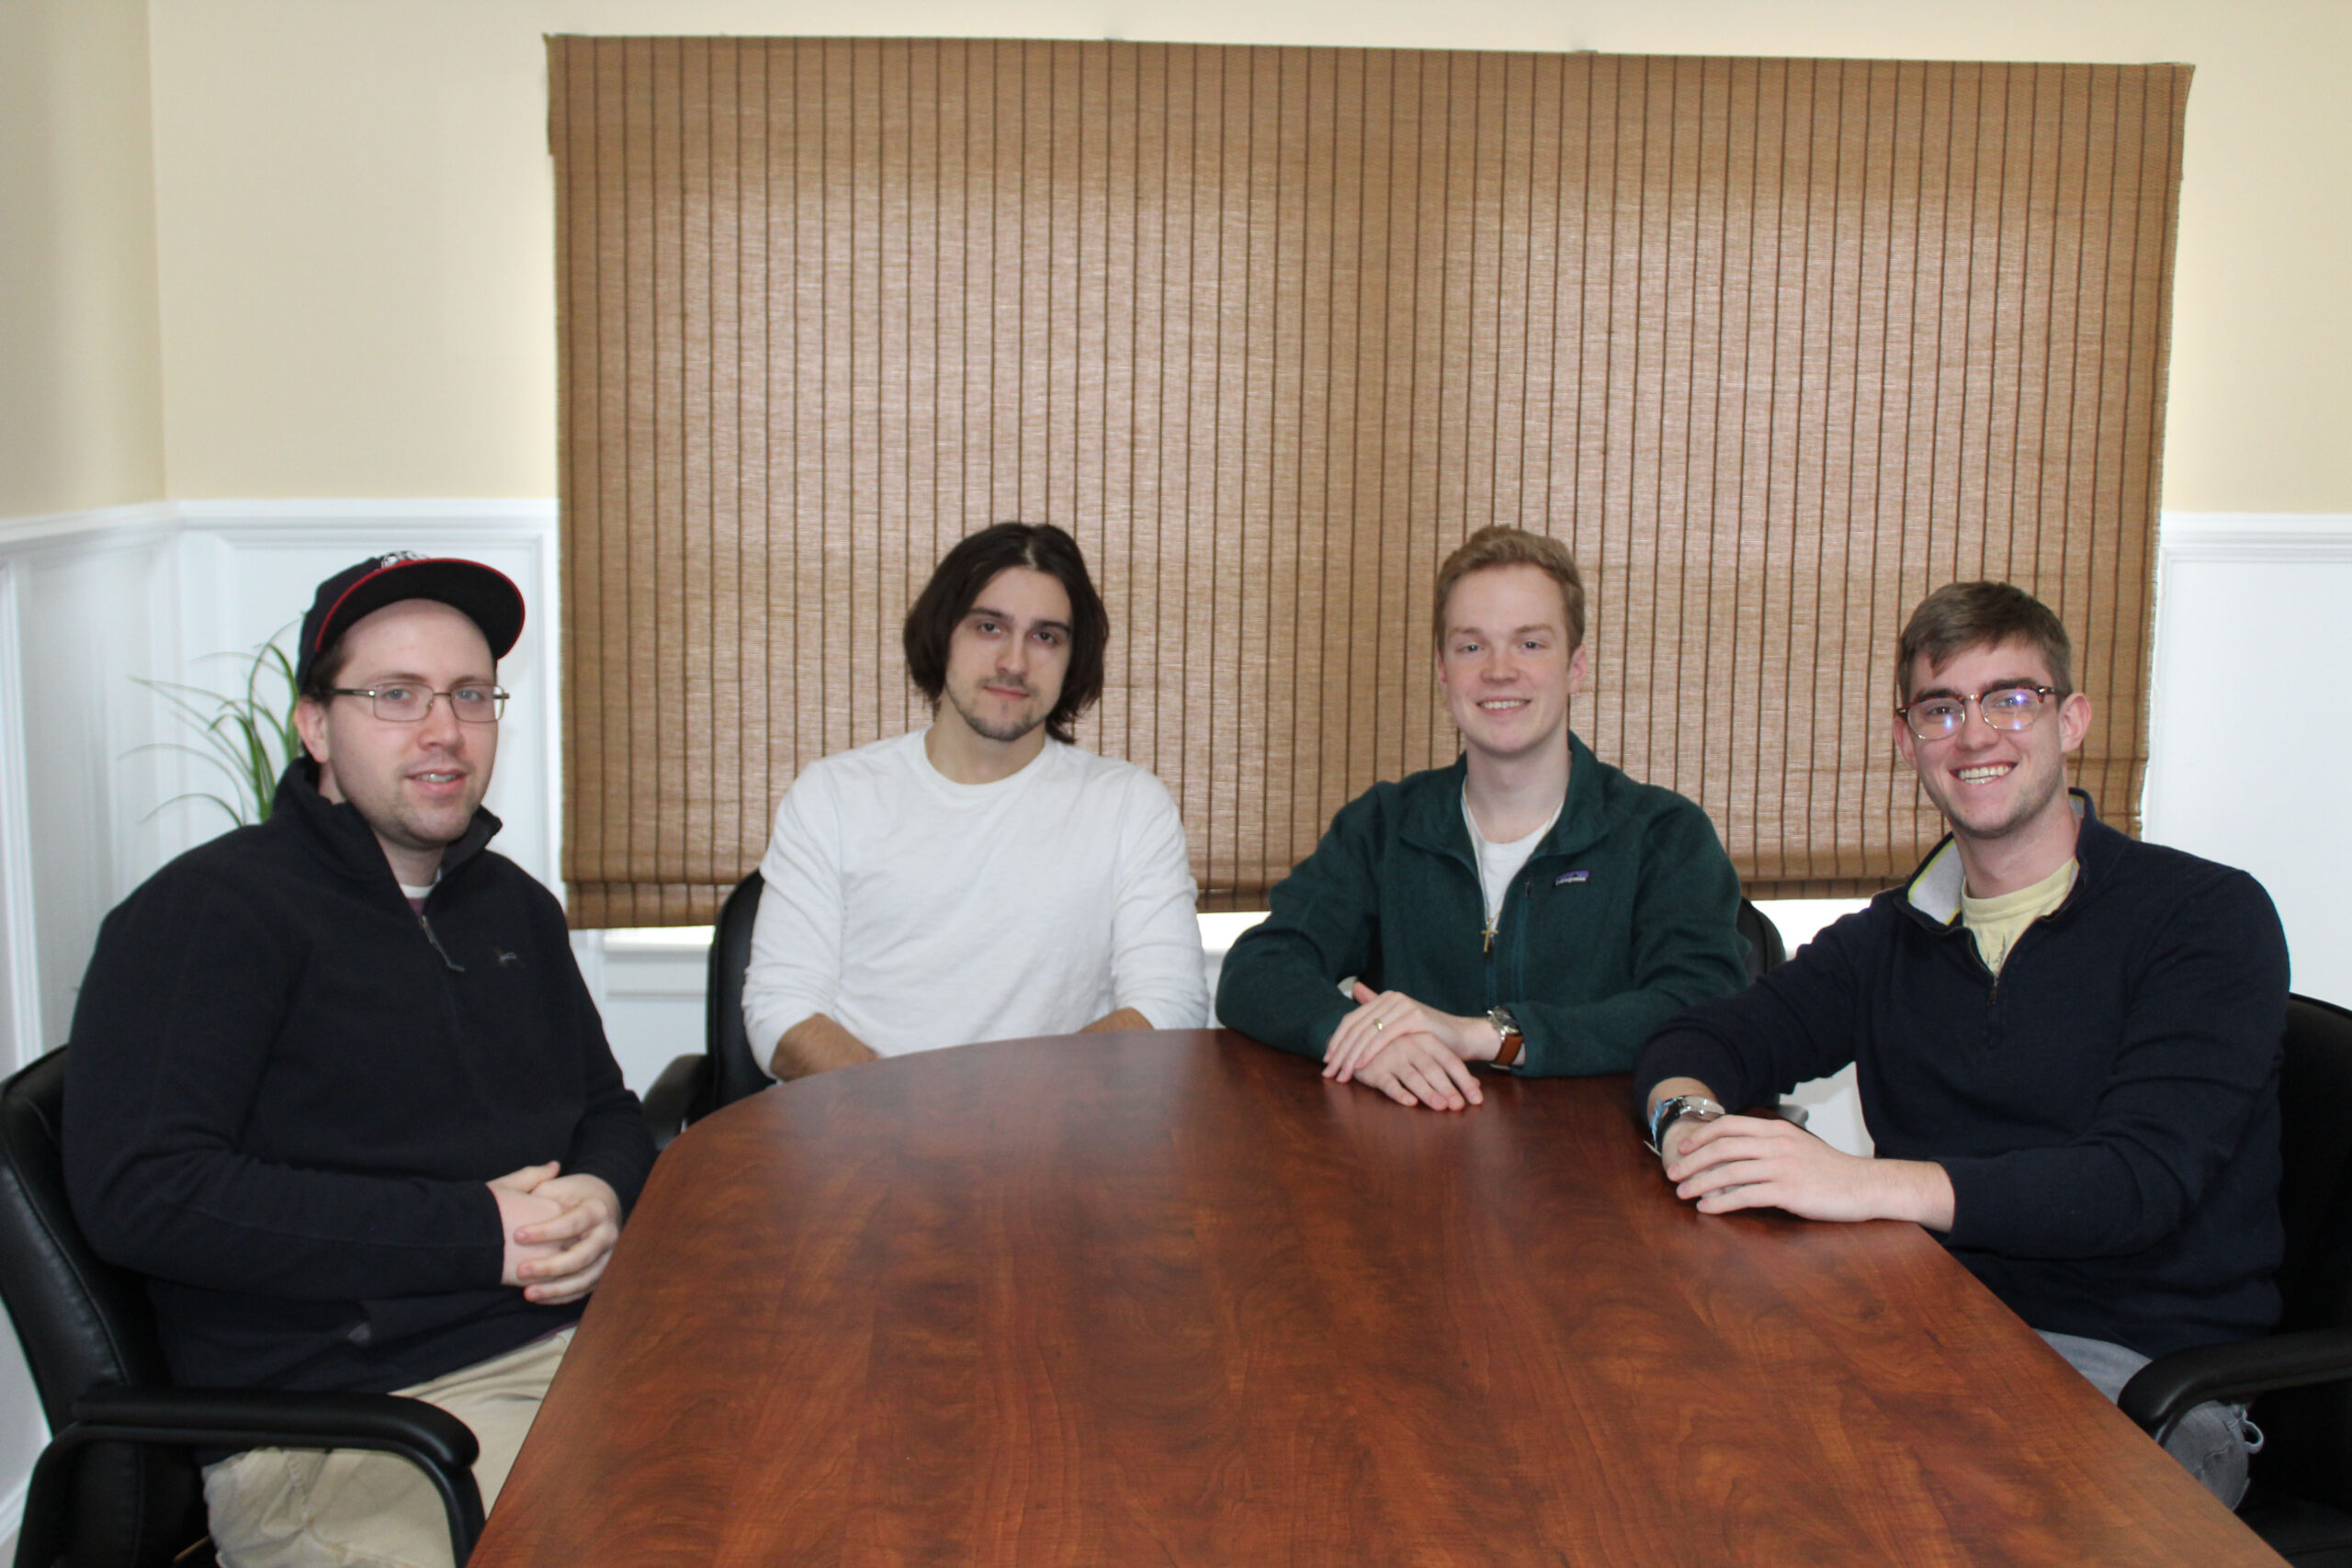 Administrative Team: Mike, Cory, Josh and Tristan